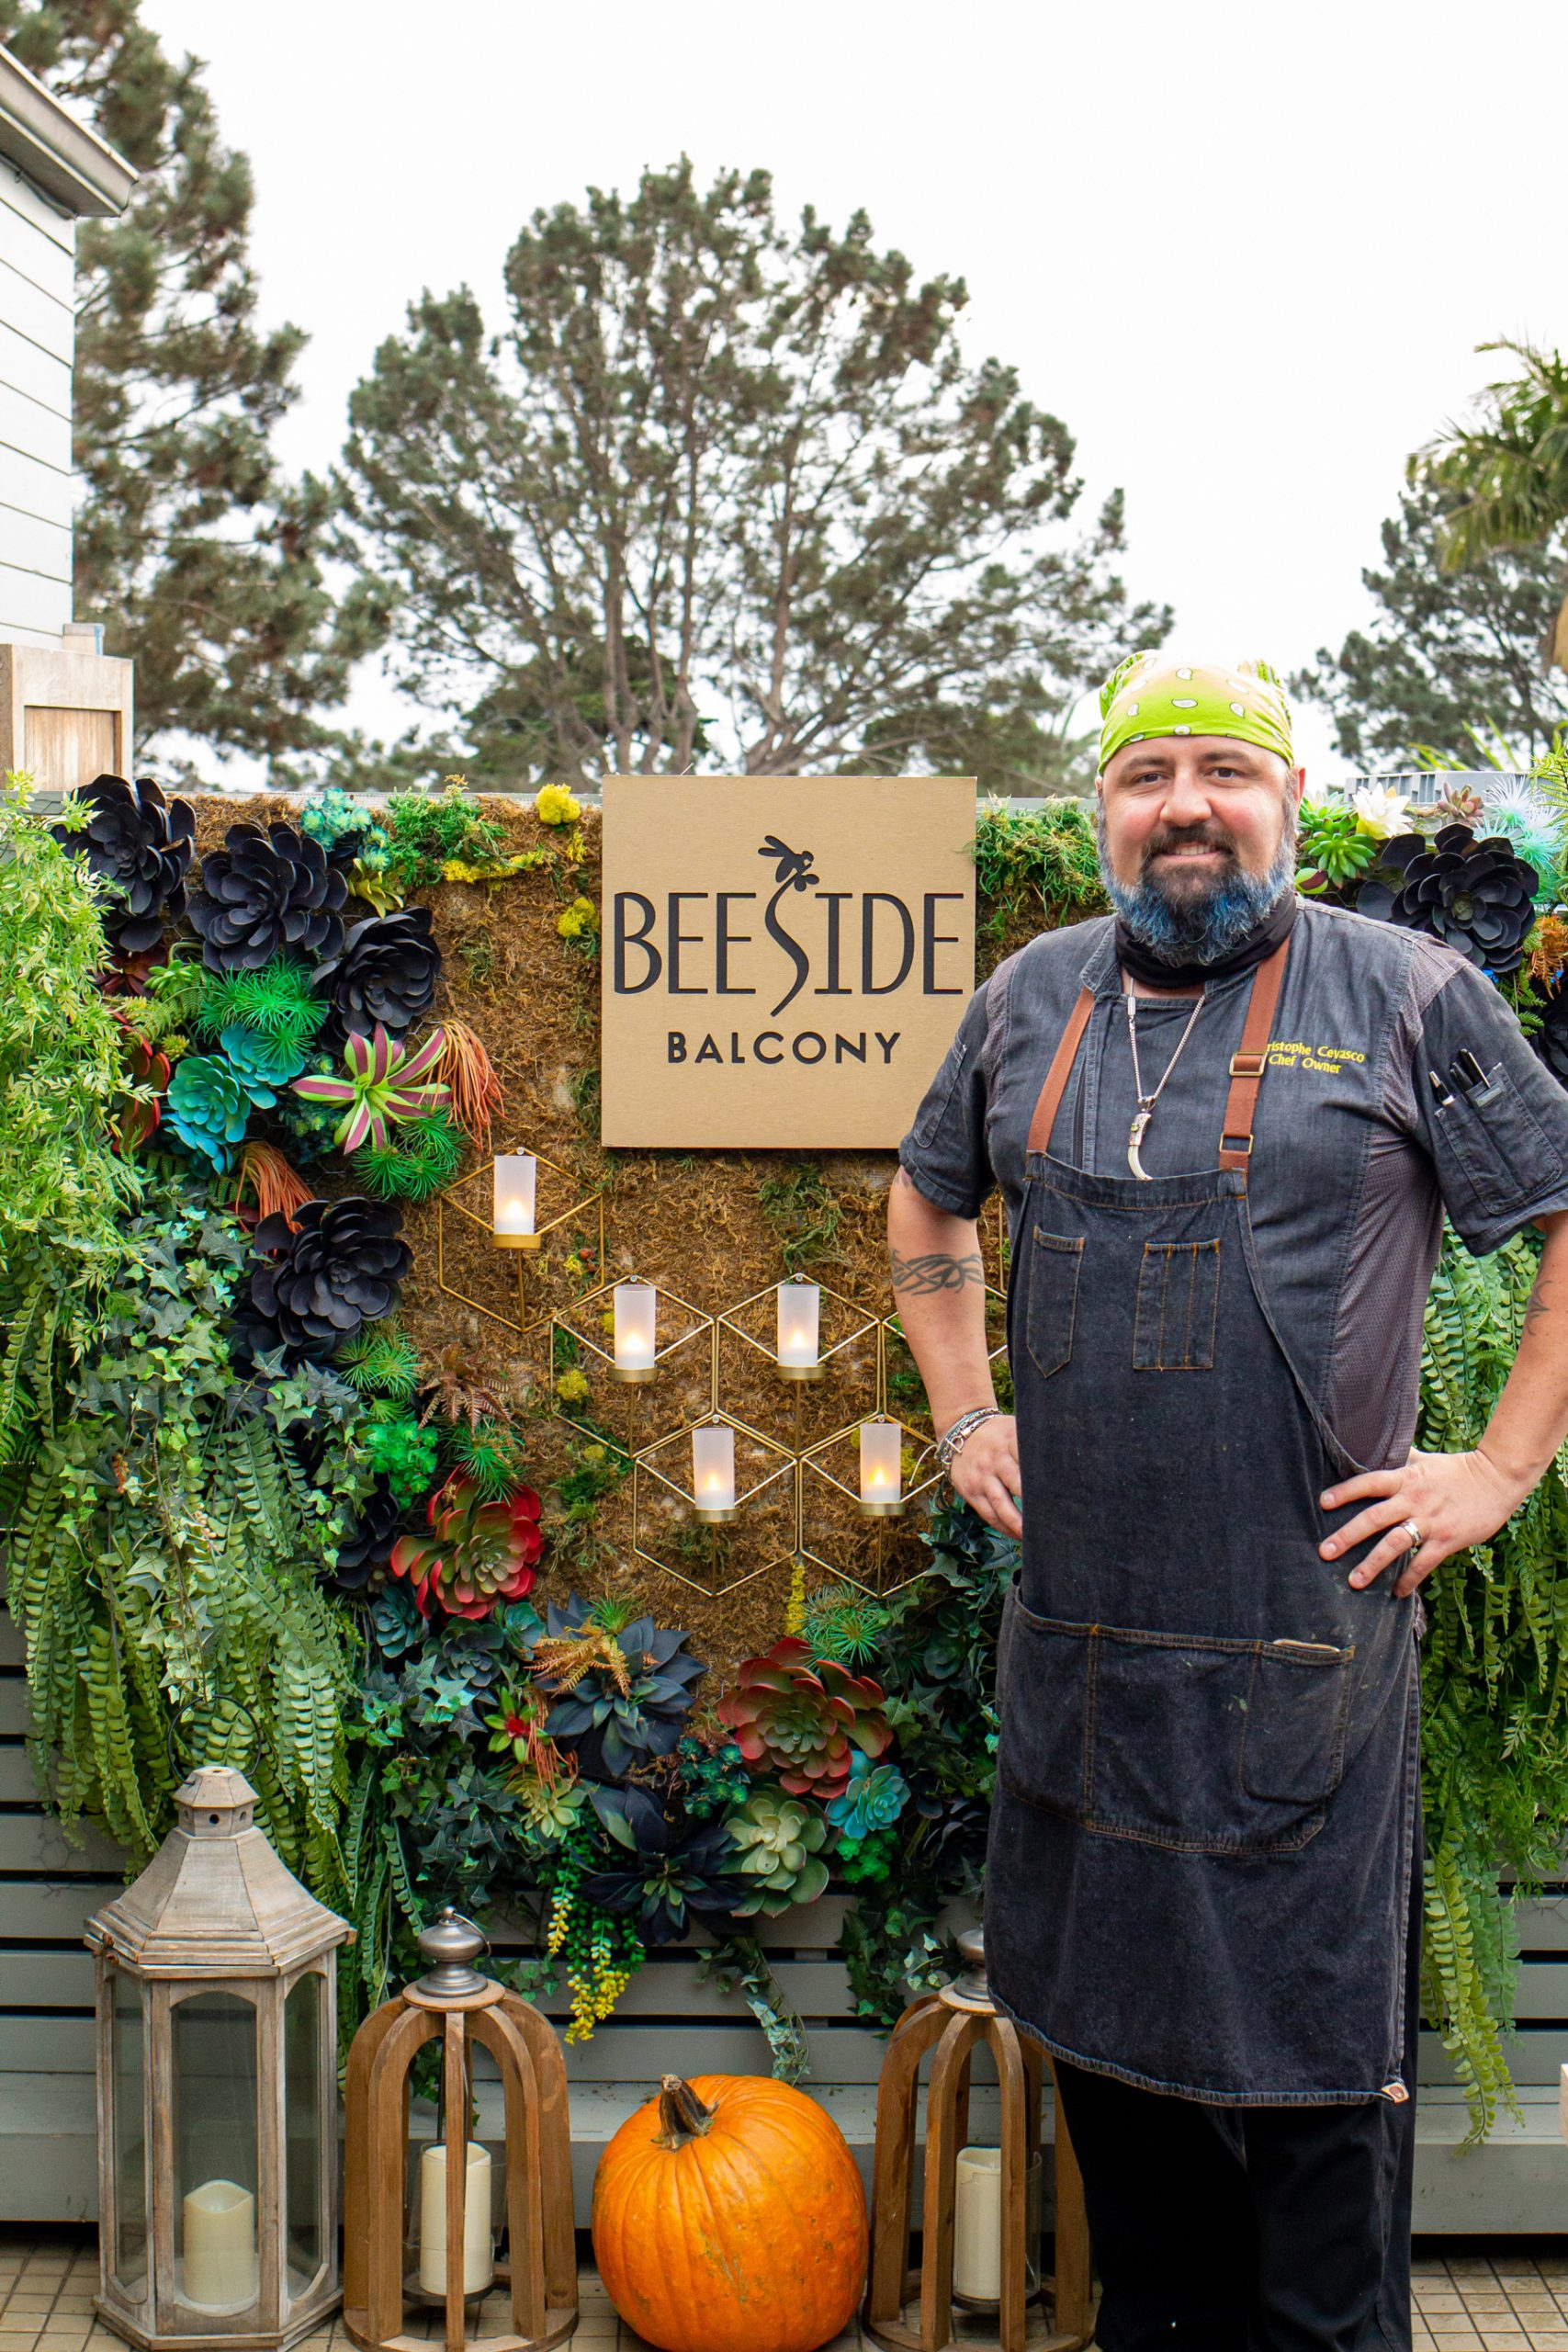 Chef Christophe in front of the Beeside Balcony Entrance